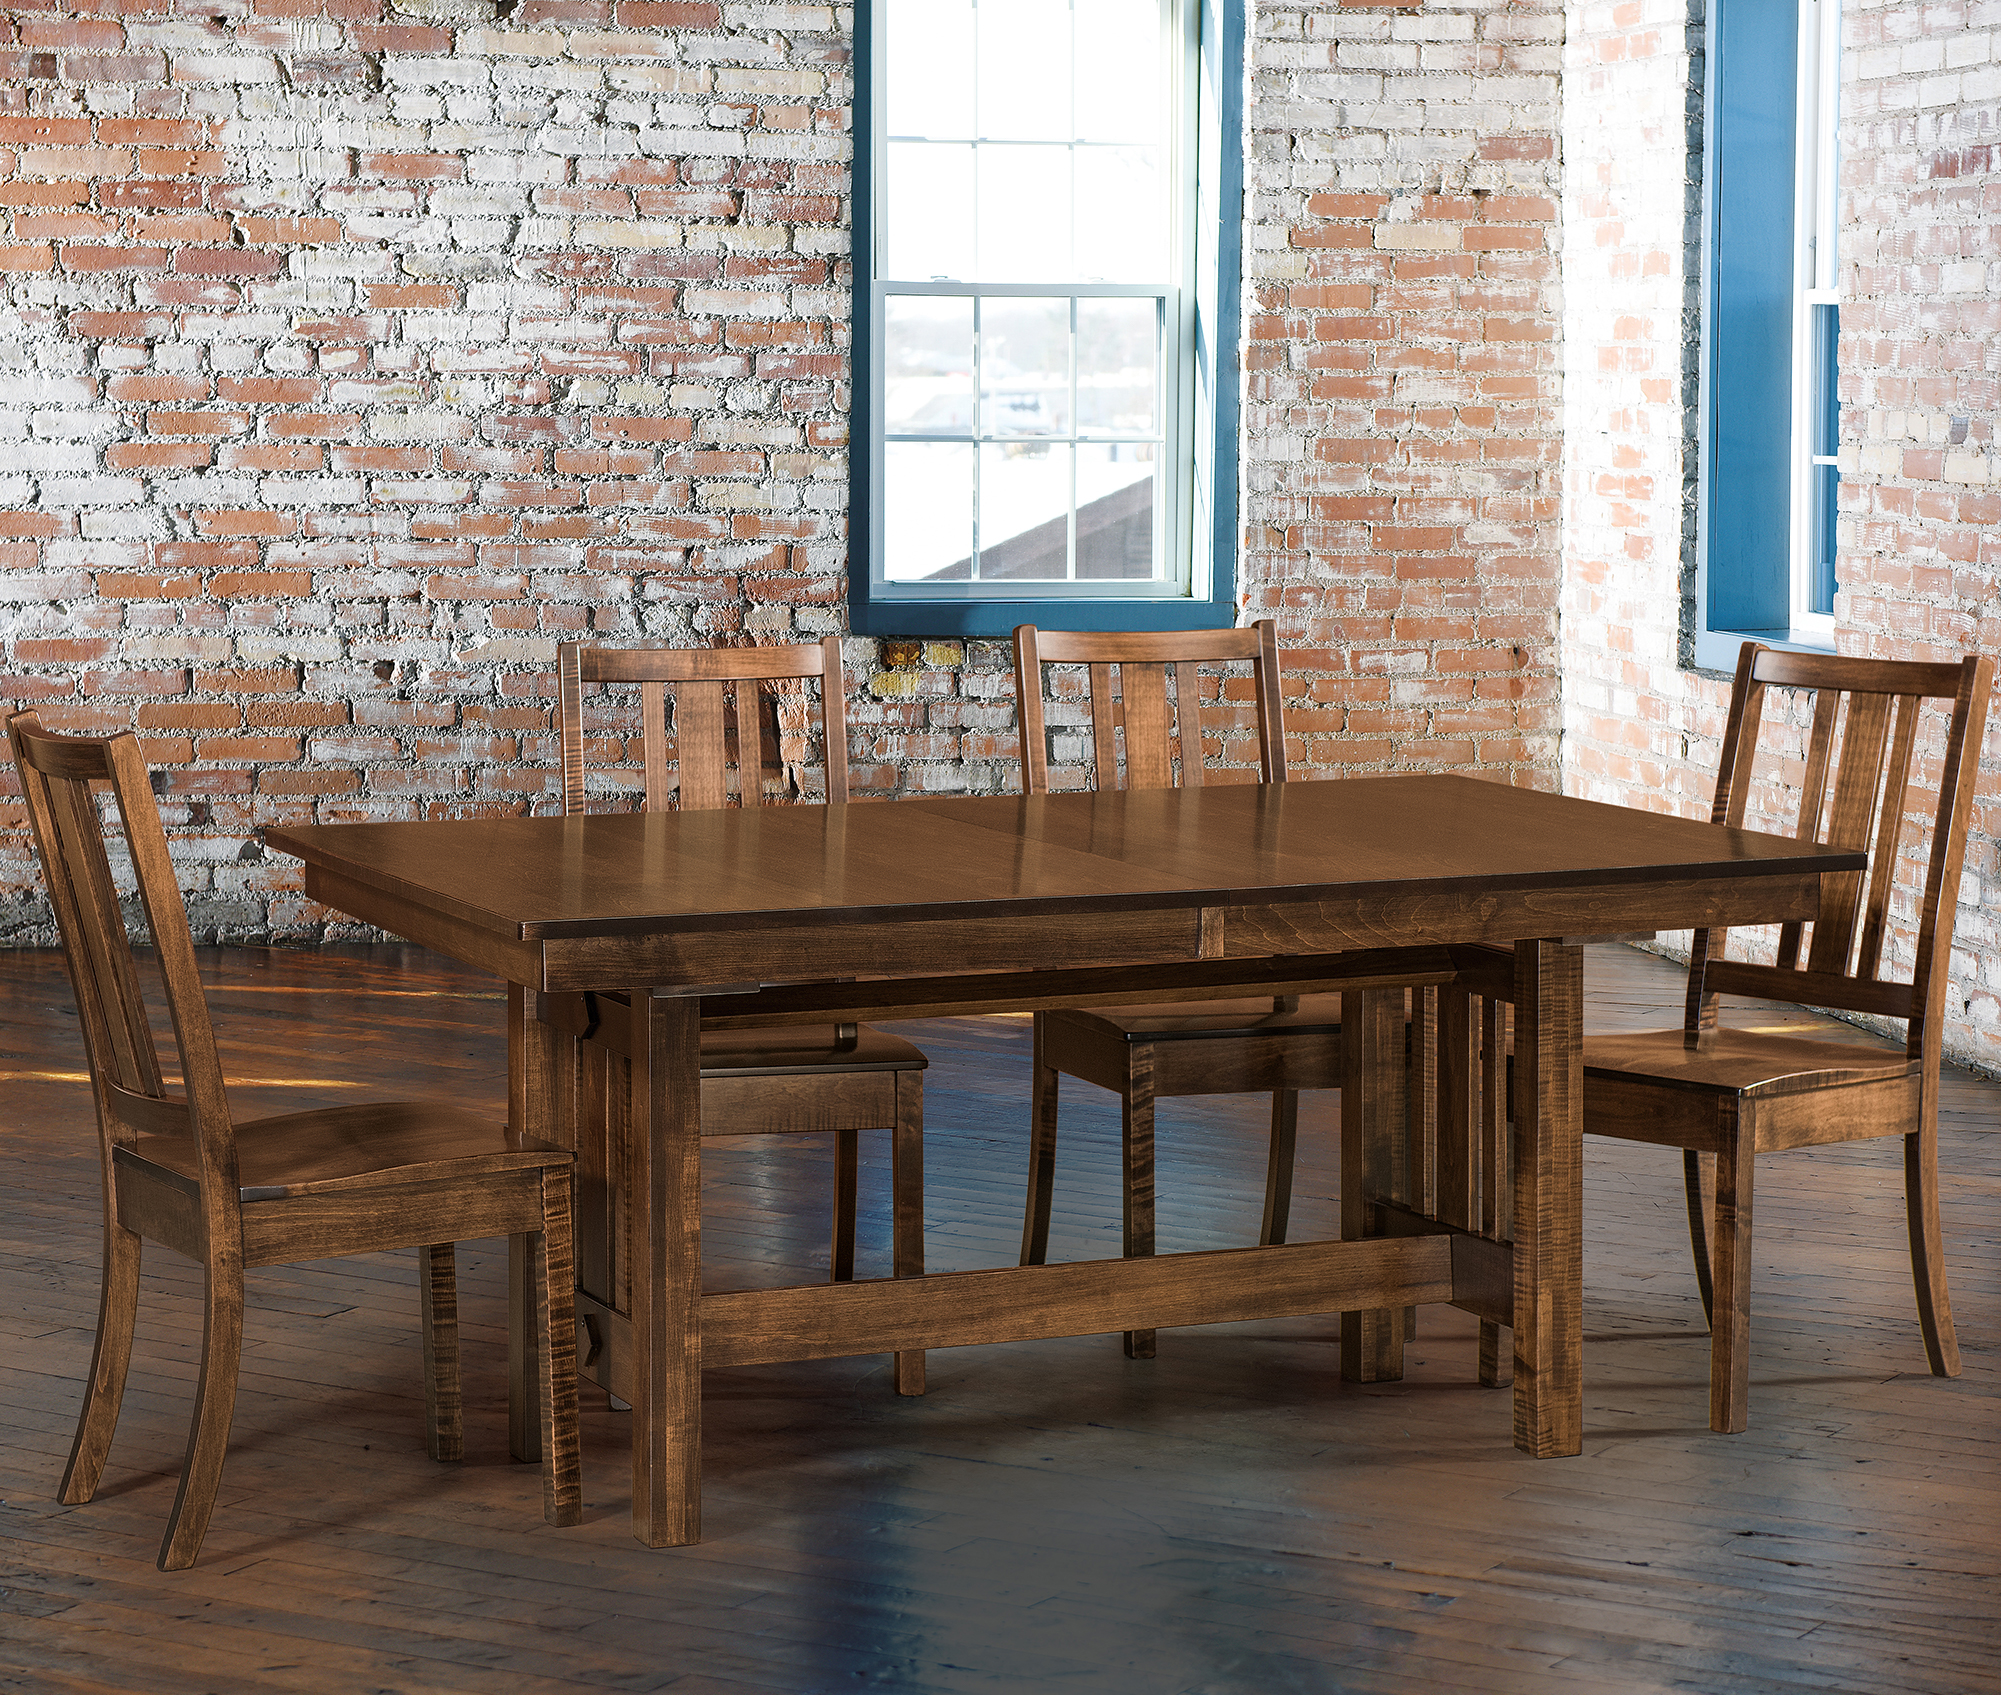 Trestle Table Amish Dining Room: Eco Trestle Table Dining Room Set